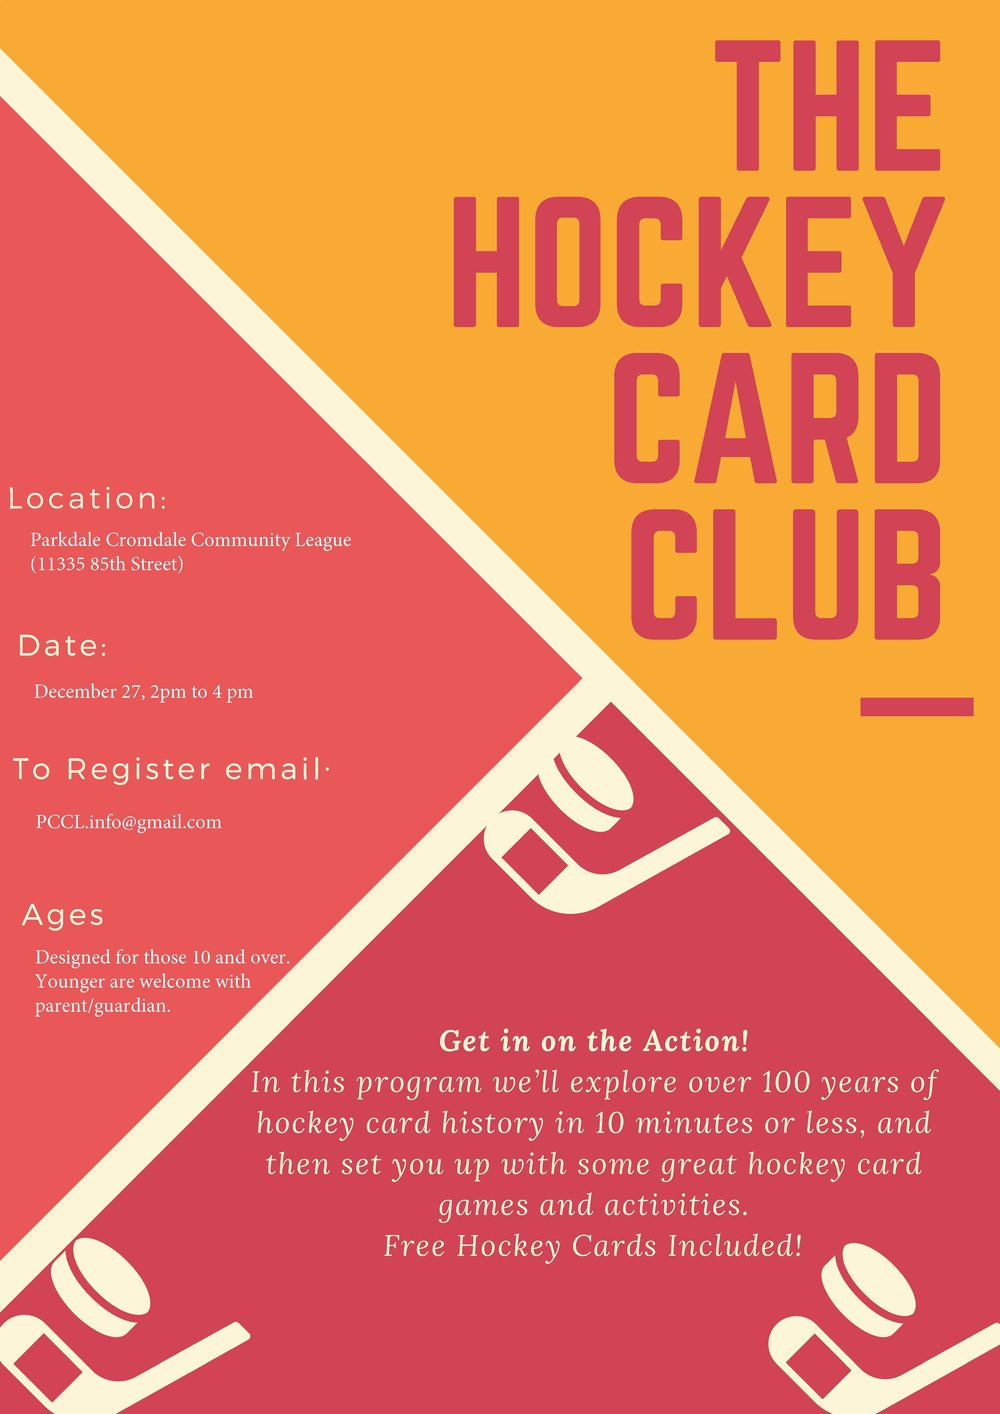 The Hockey Card Club Event.jpg